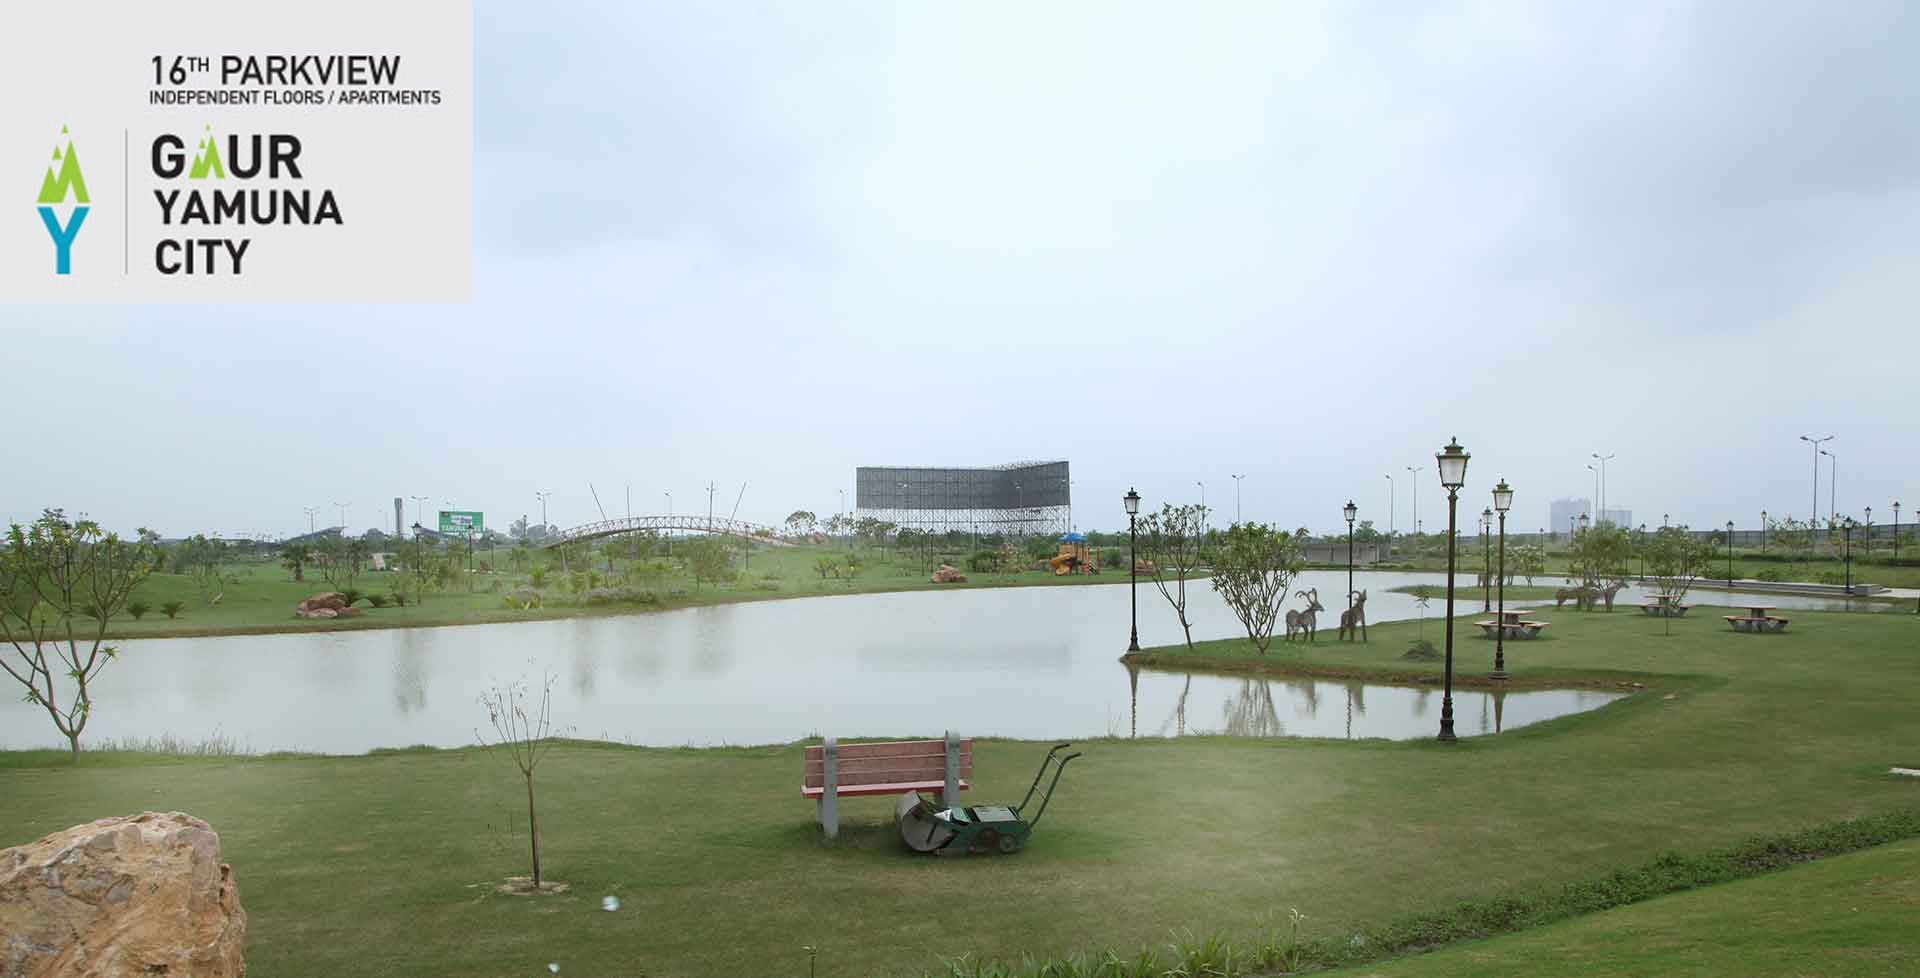 Gaur Yamuna City 16 Parkview